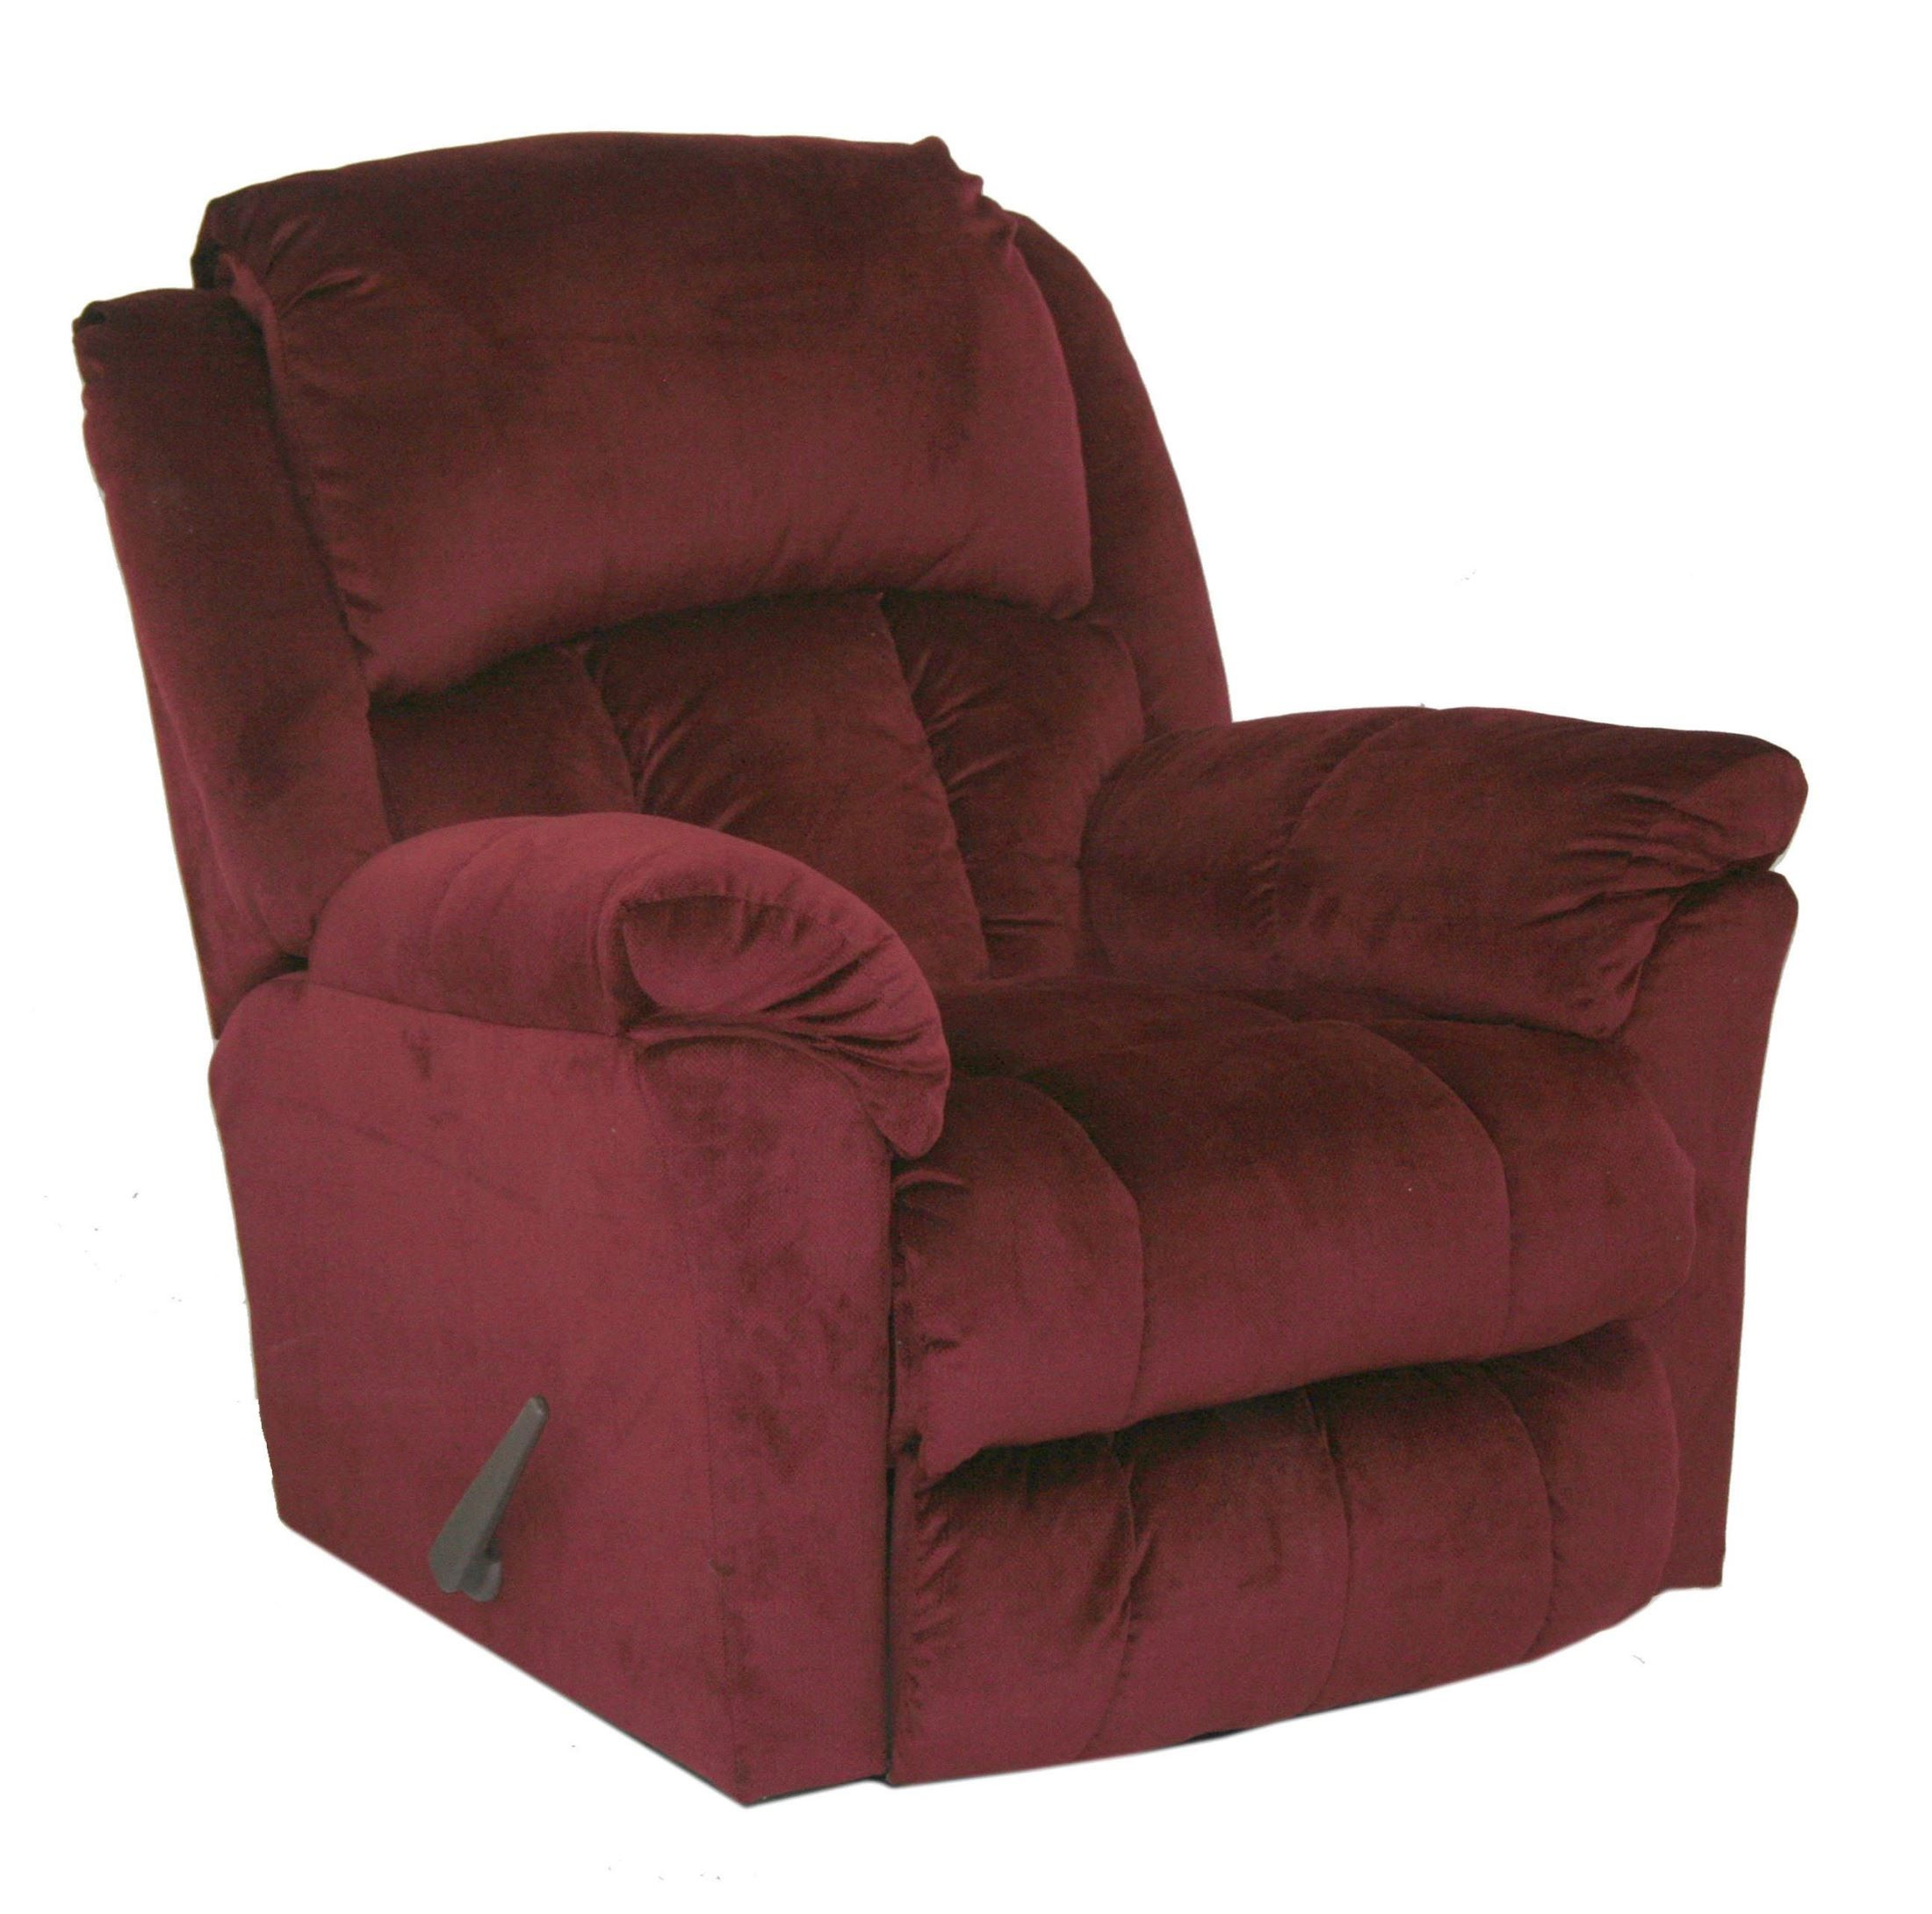 Gibson berry swivel glider recliner from catnapper for Catnapper gibson chaise recliner